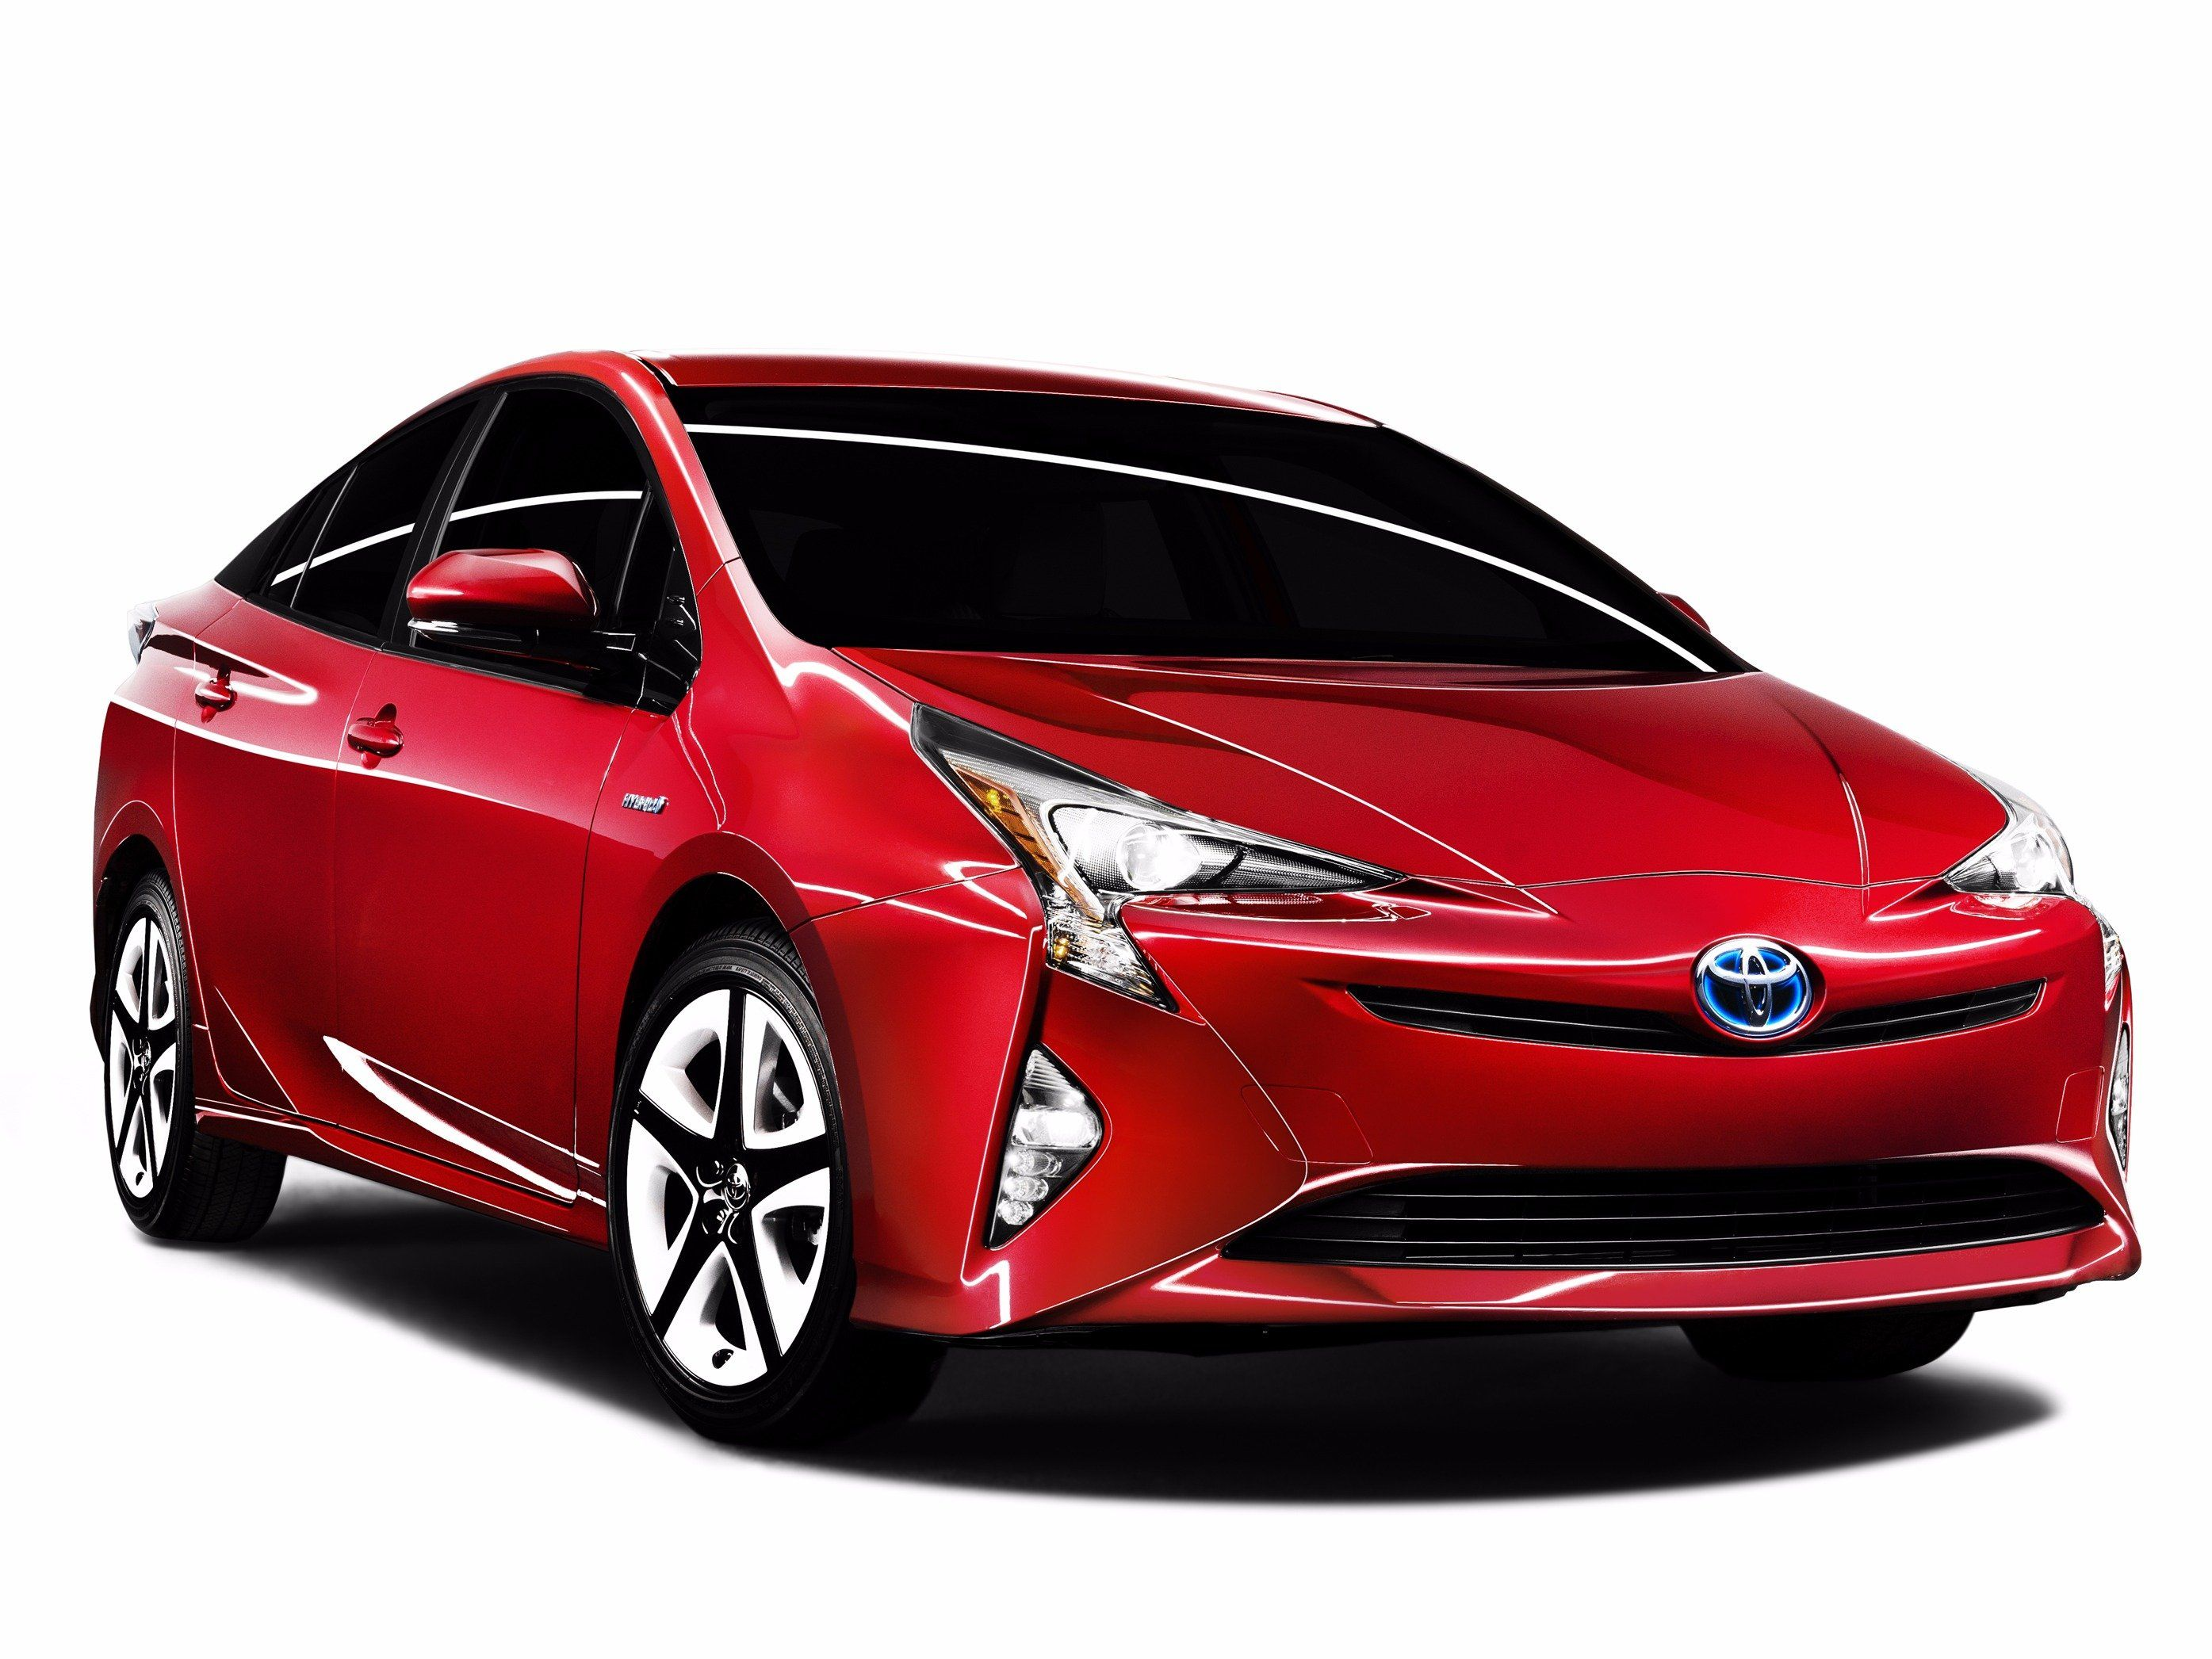 I Love My New Toyota Prius A Lot More Than I Thought I Would